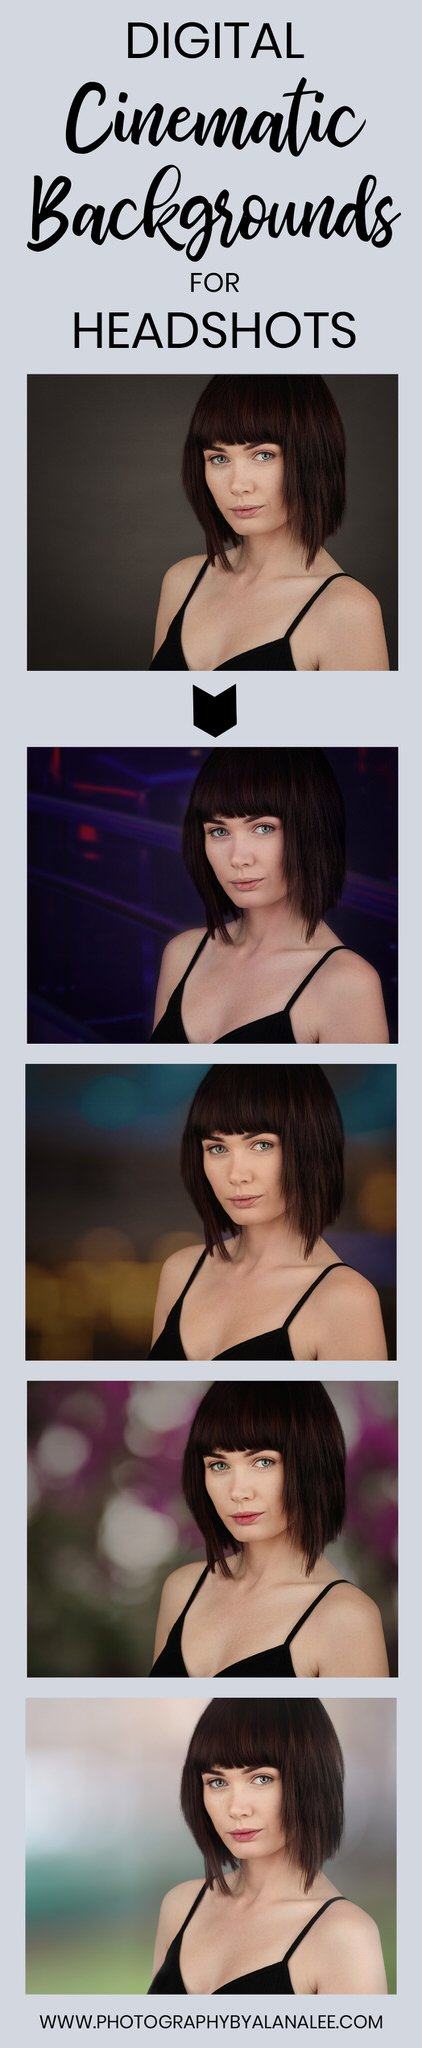 before and after images showing how to use digital backgrounds for cinematic headshots